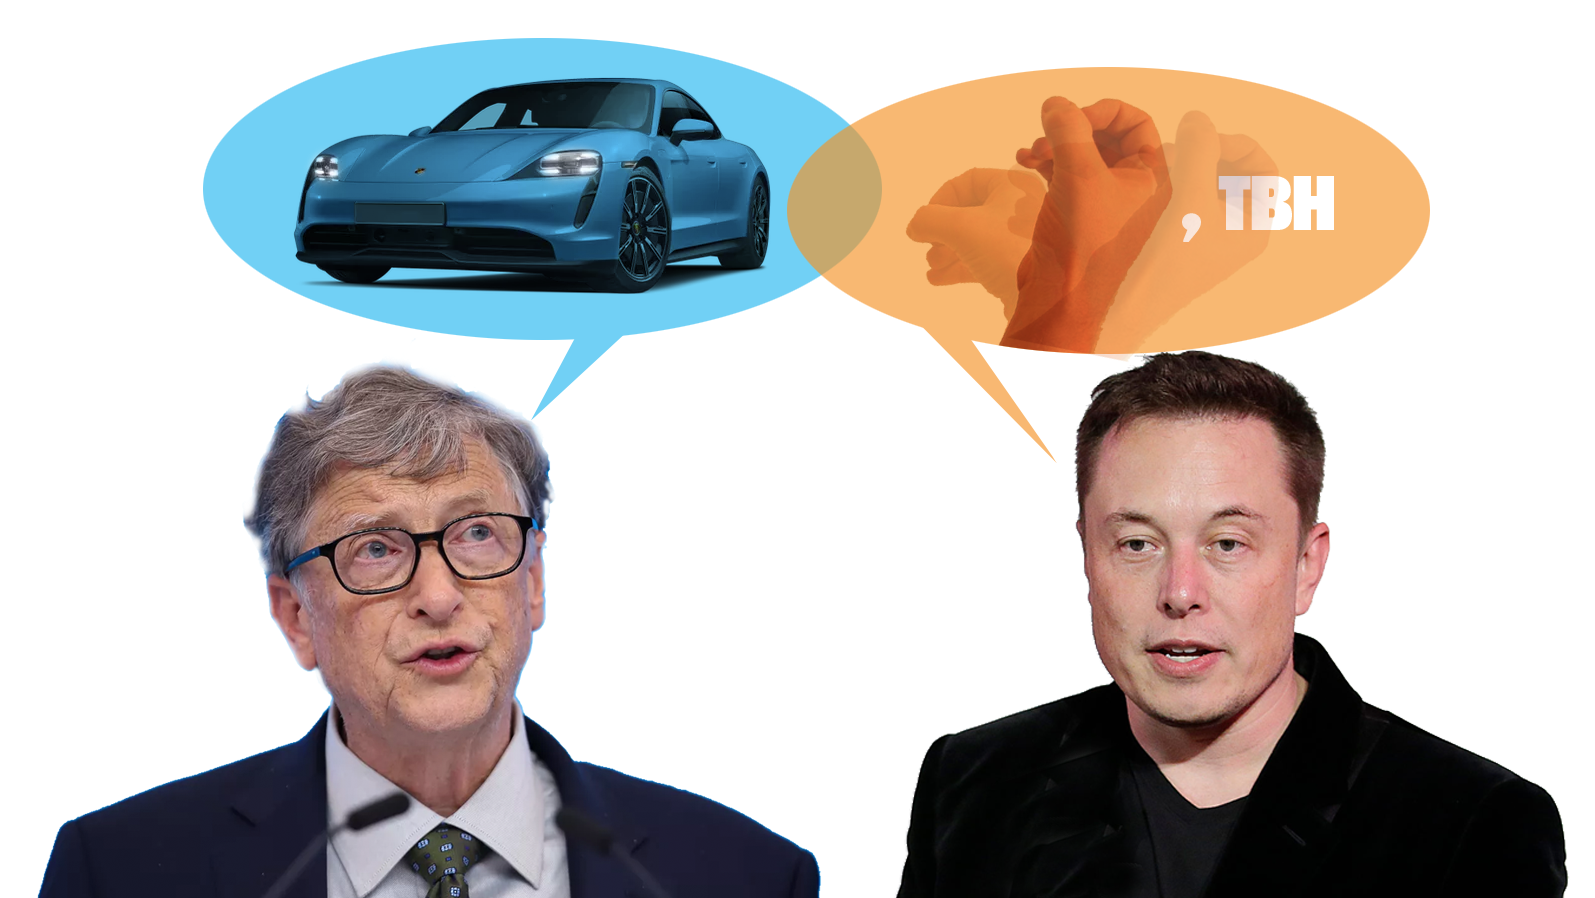 Bill Gates Buys A Porsche Taycan So Elon Musk Had To Throw Shade Because This Is Modernity